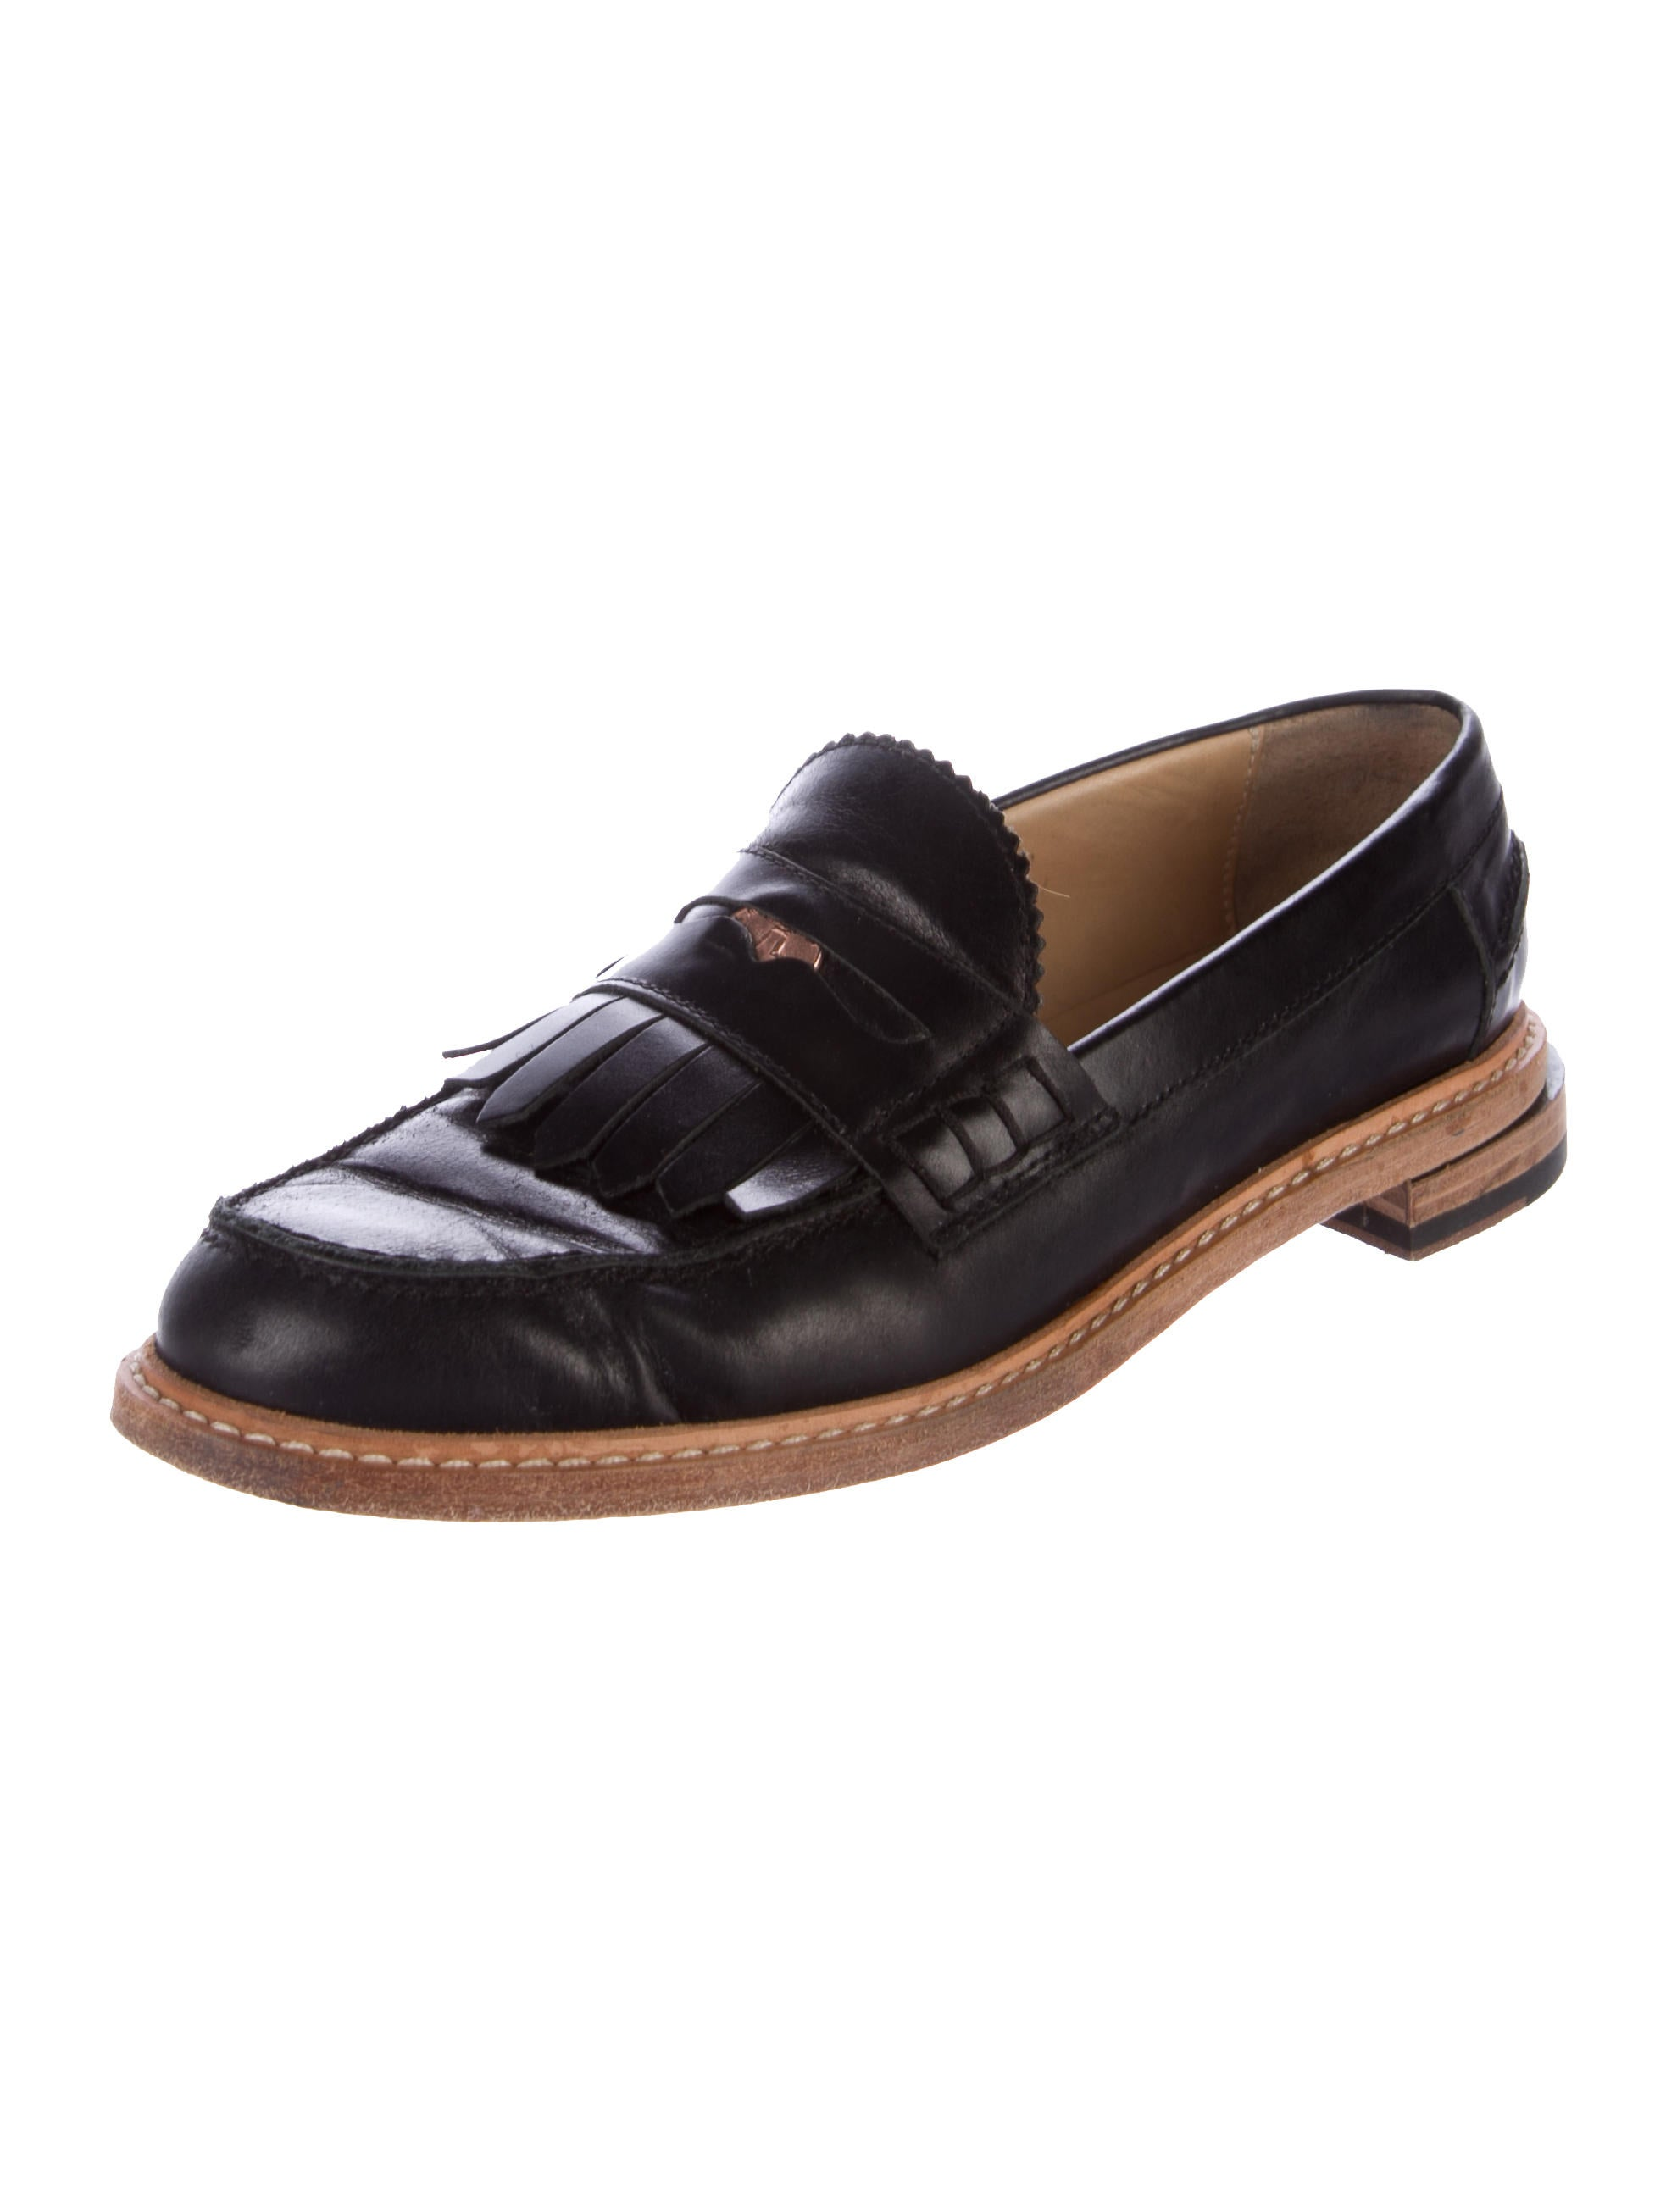 Band of Outsiders Leather Round-Toe Loafers pay with paypal cheap price zkWtAlWk3C